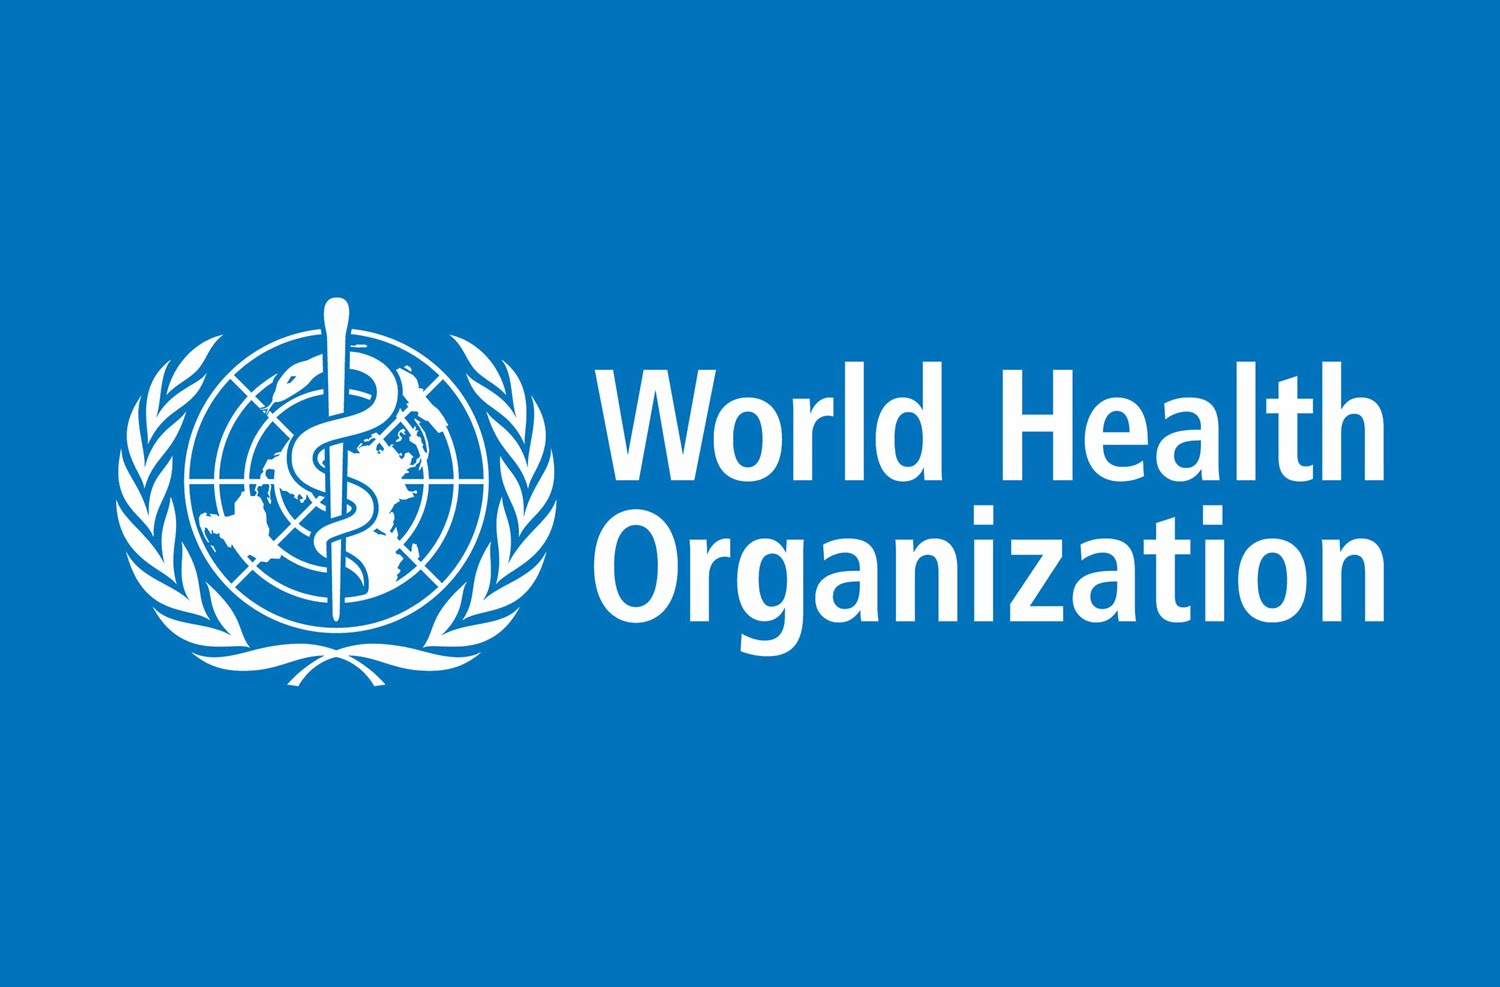 WHO issues new treatment guidance, recommending steroids to treat critically ill Covid patients